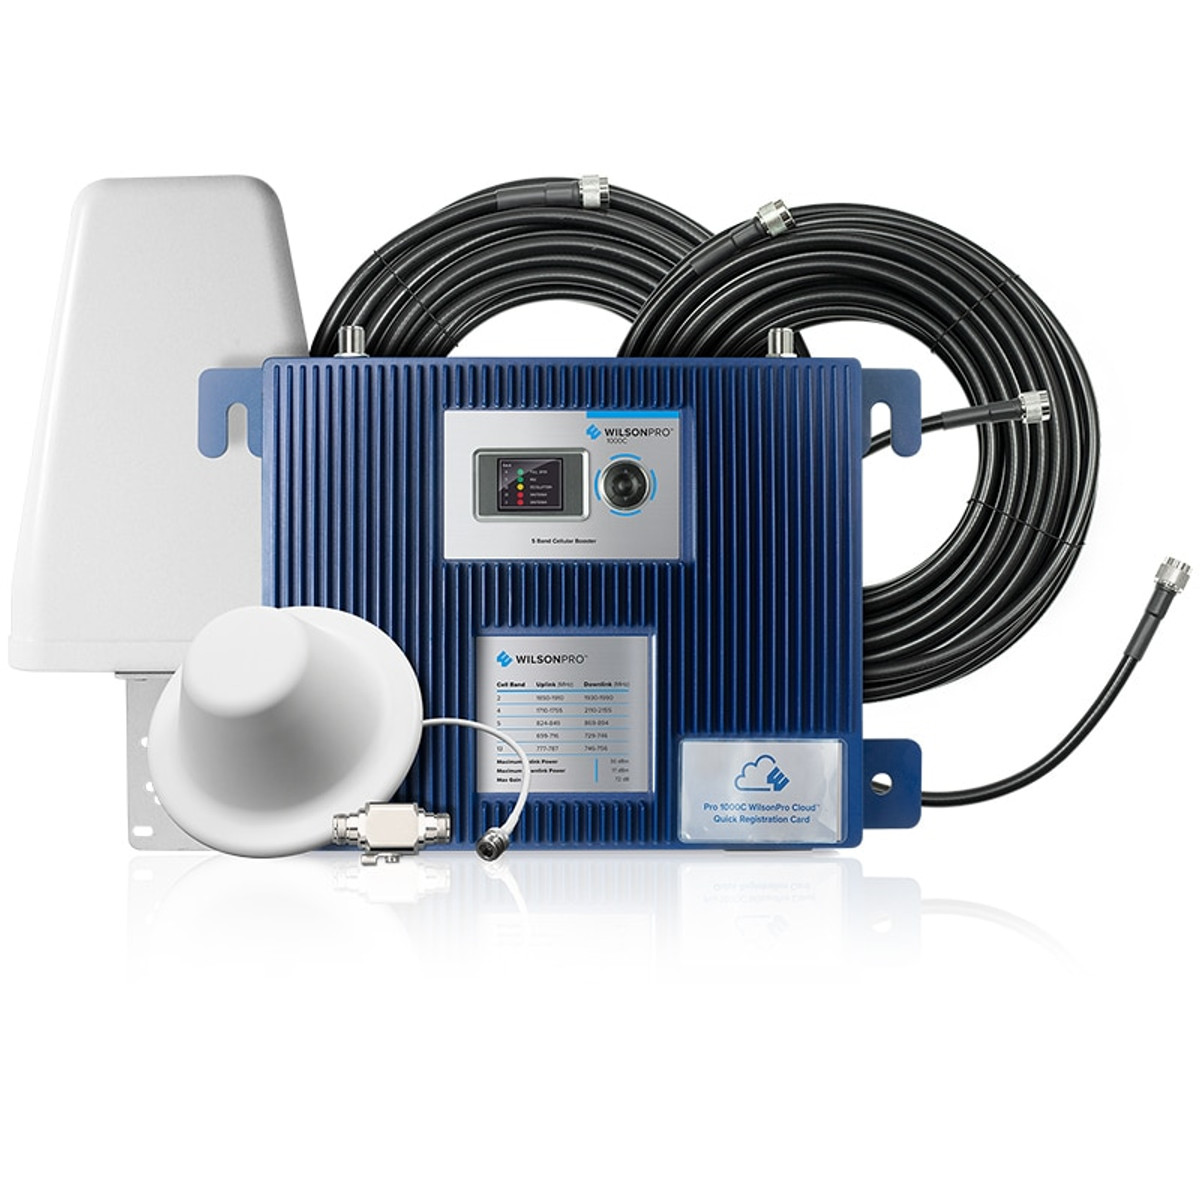 WilsonPro Rapid Deploy Kit Cell Phone Booster Kit | 620042